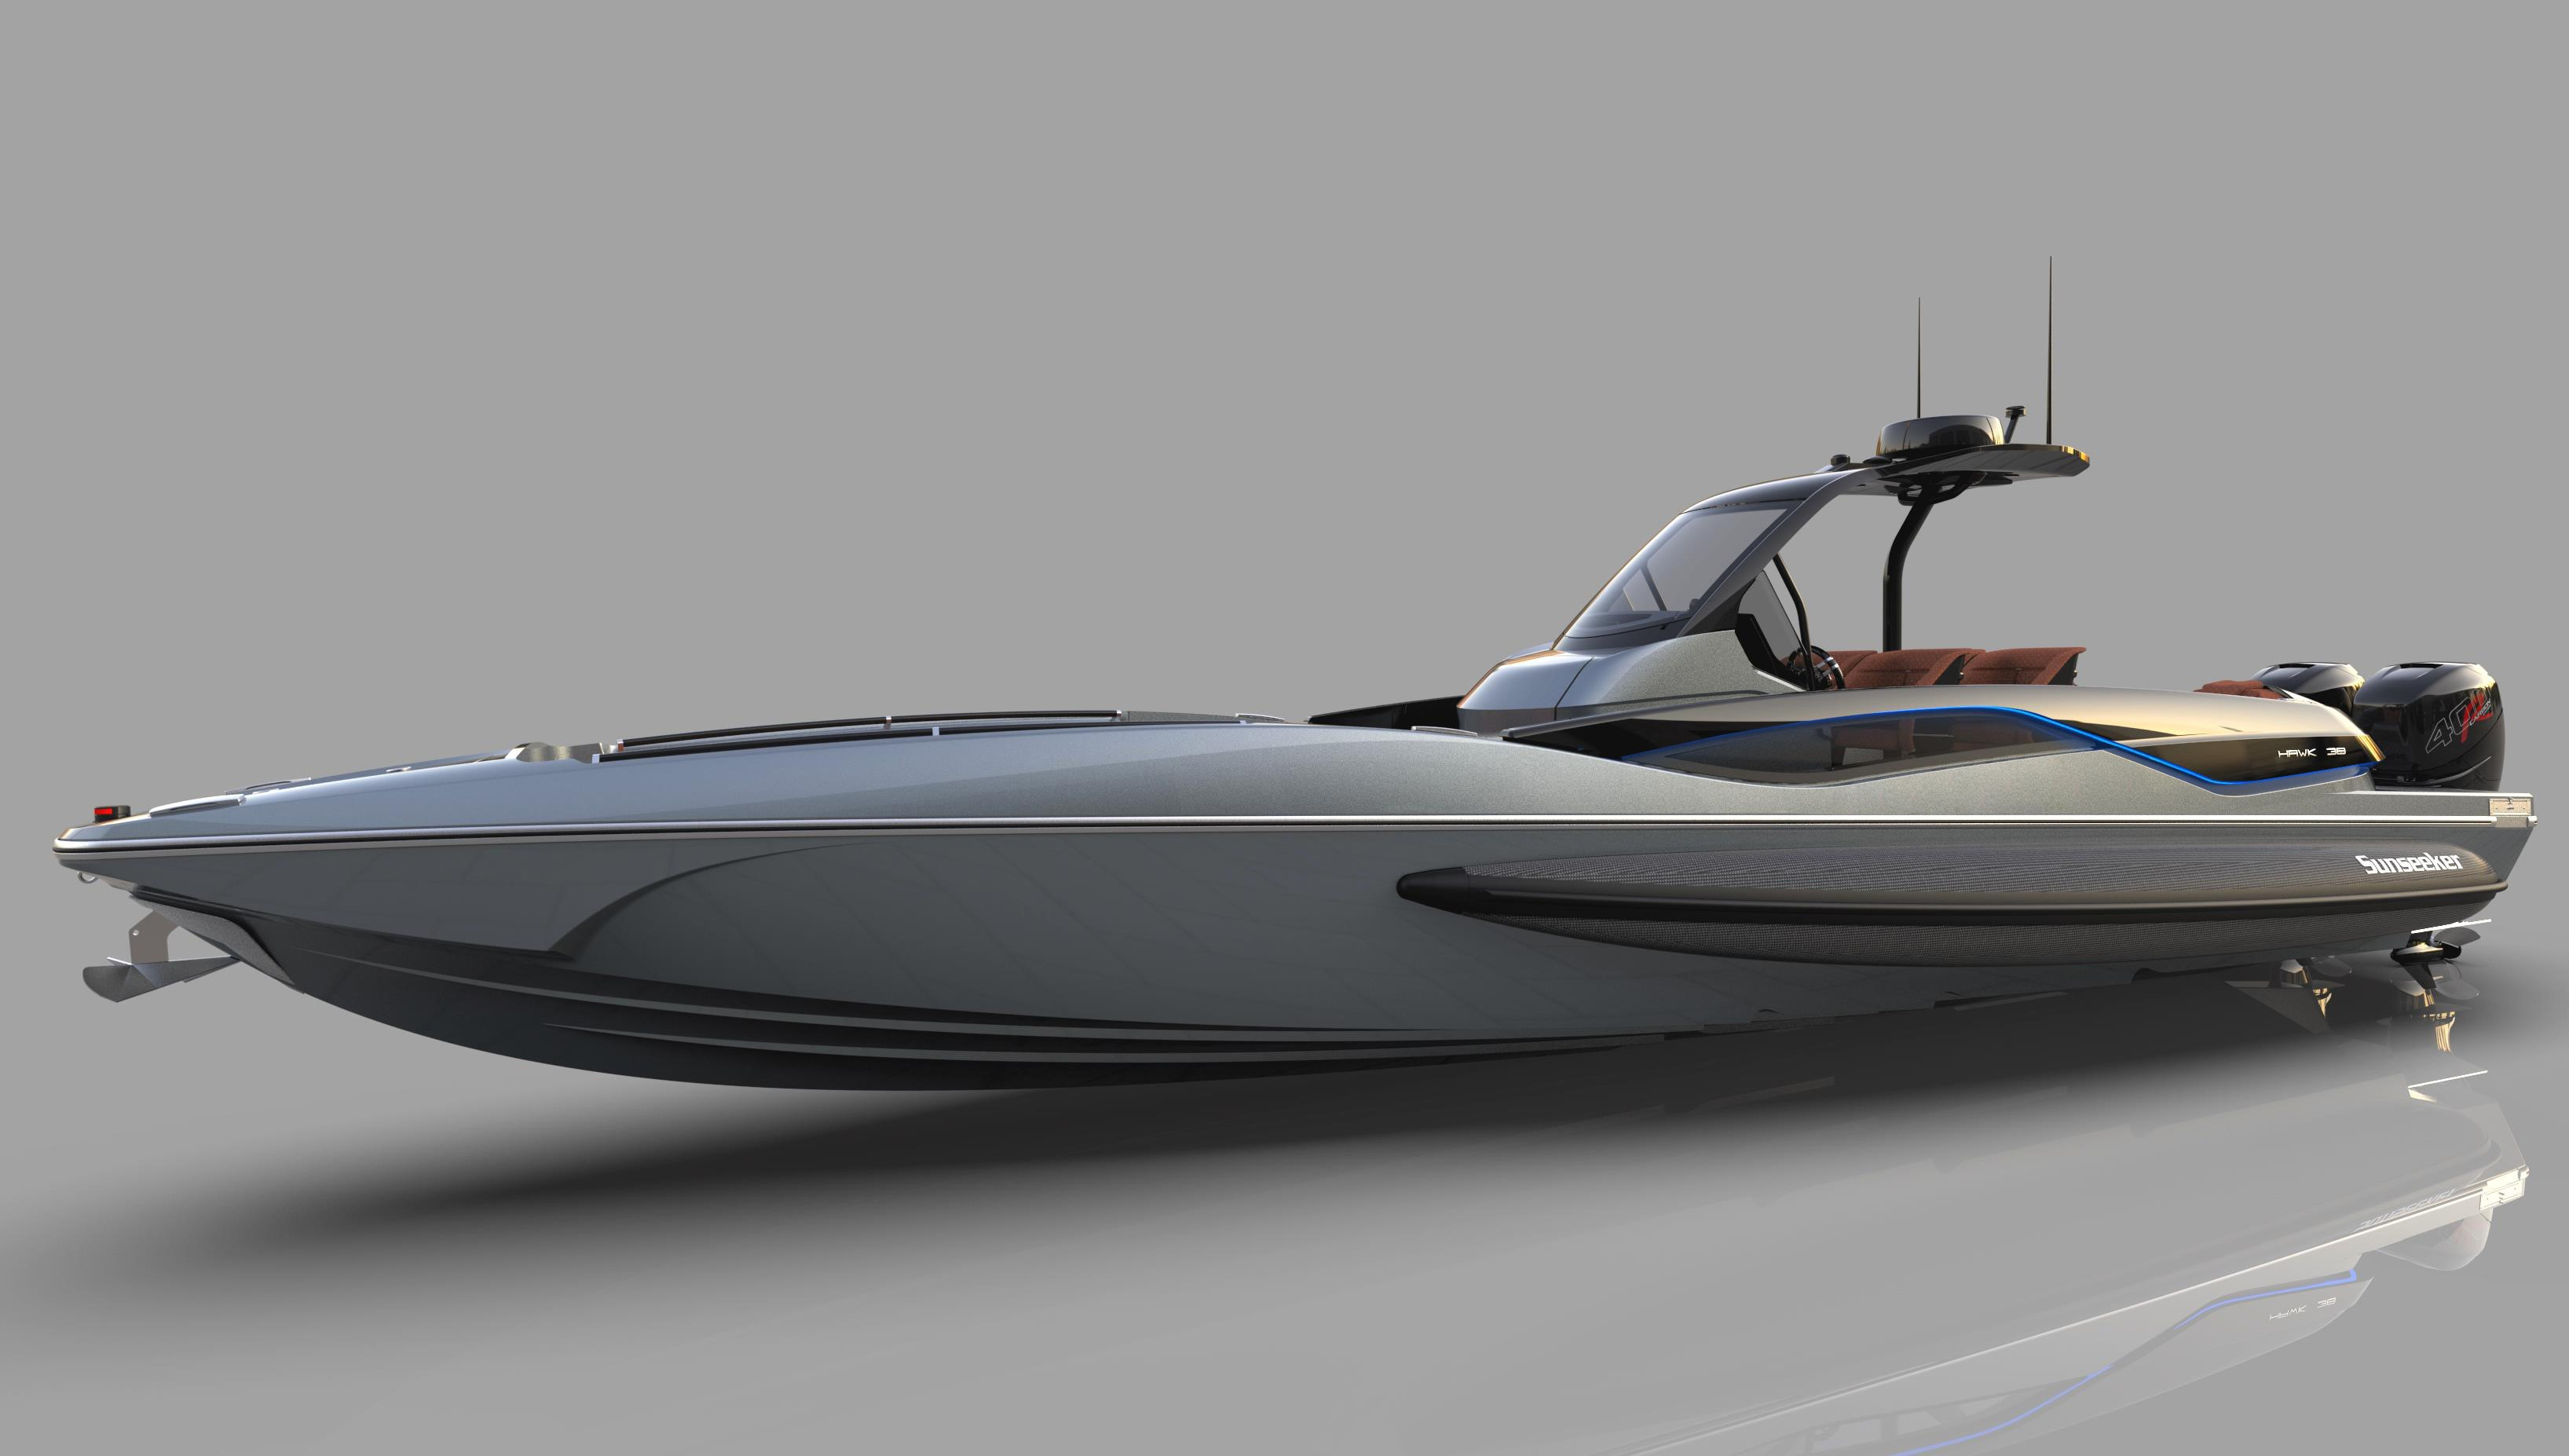 The New Sunseeker Hawk 38 - Our Man On The Ground Travel and